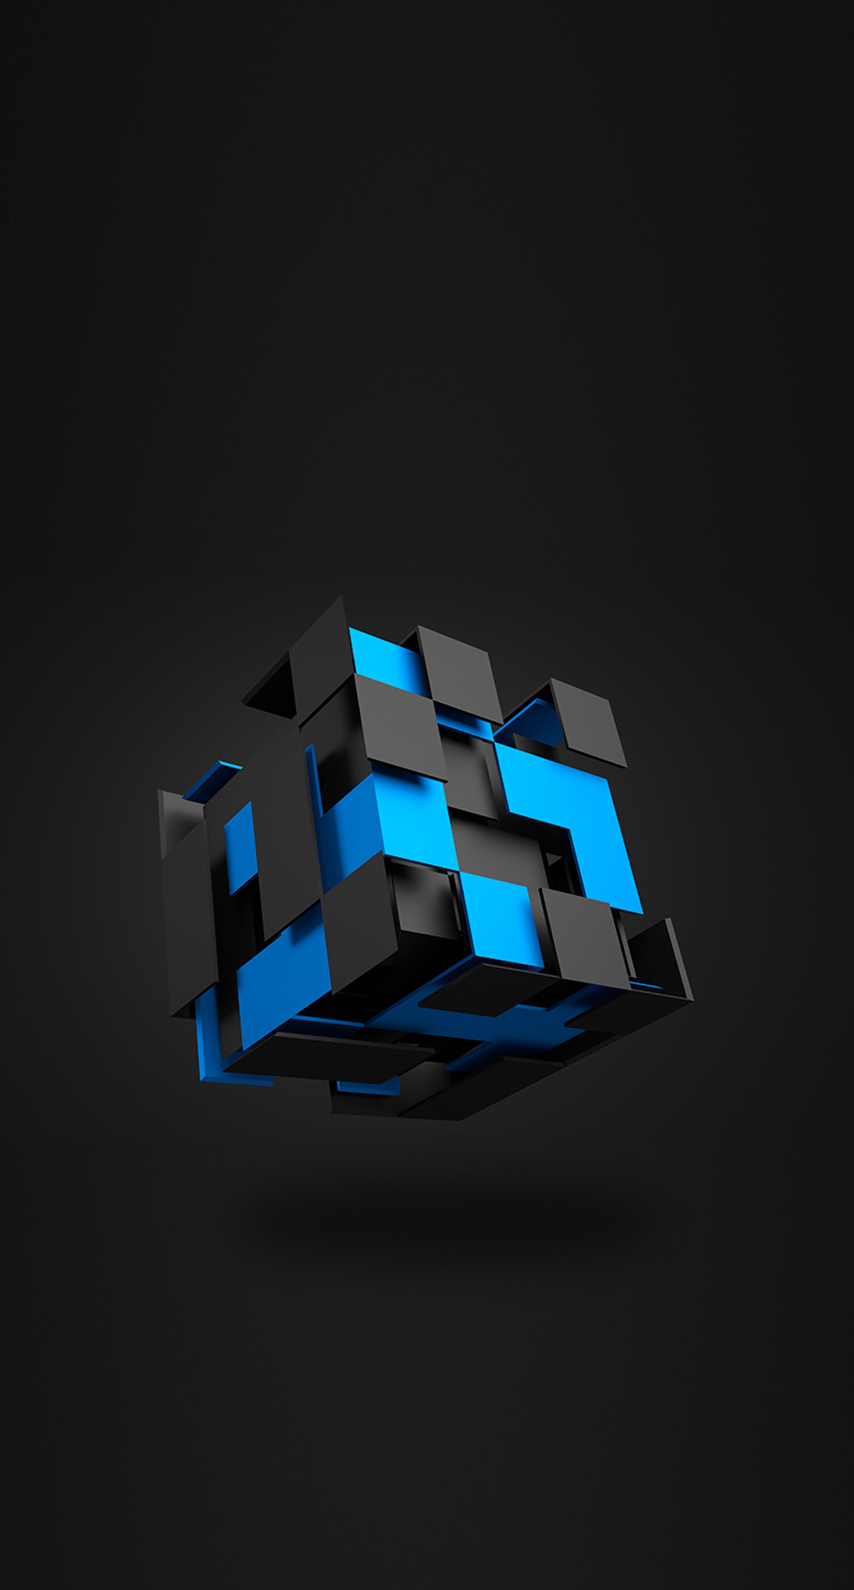 symbol, business, square, vector, conceptual, image, internet, shadow, connection, cube